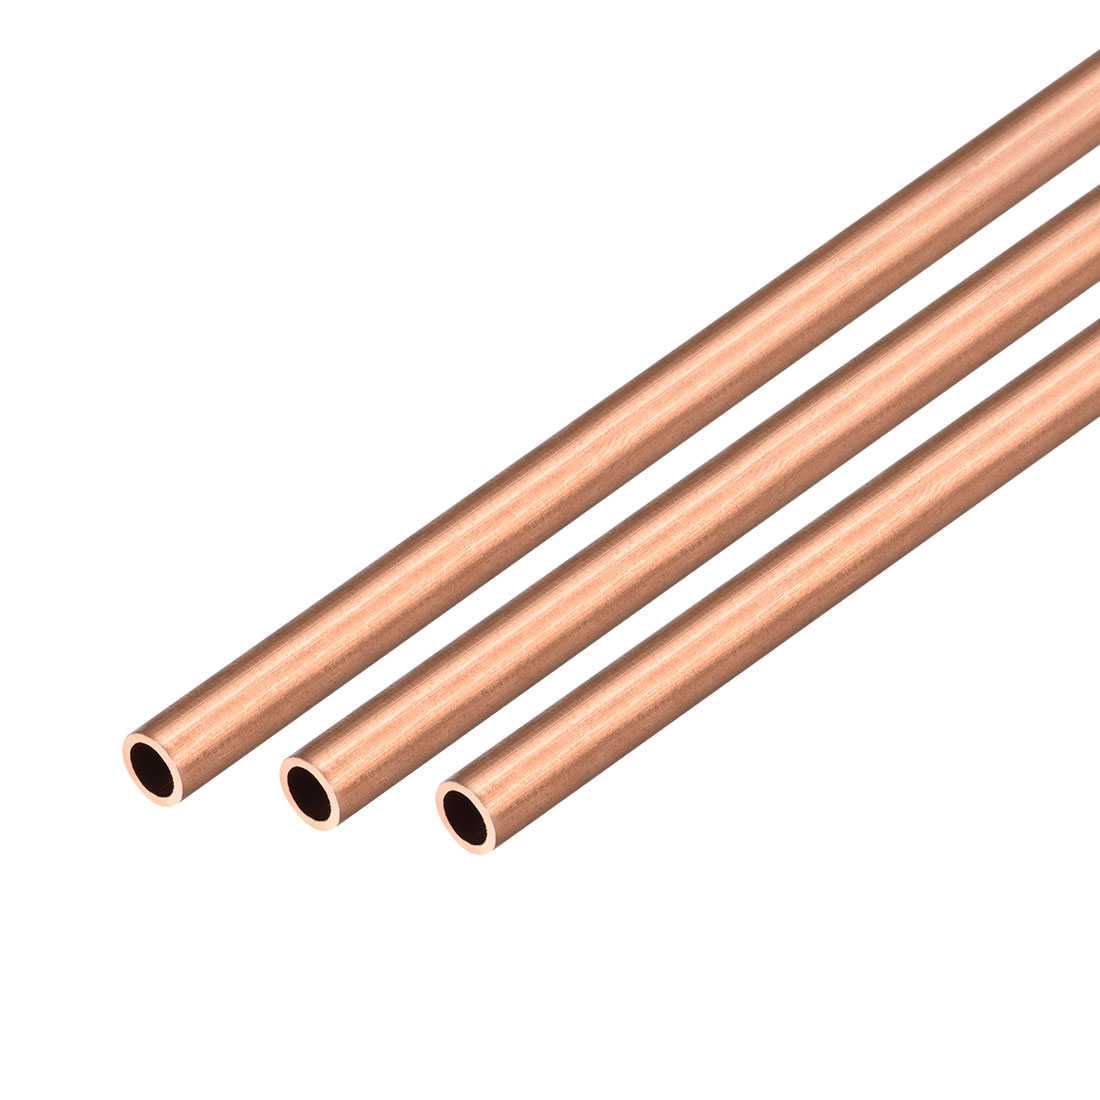 3Pcs 8mm Outside Diameter x 6mm Inside Diameter 500mm Copper Round Tube Pipe